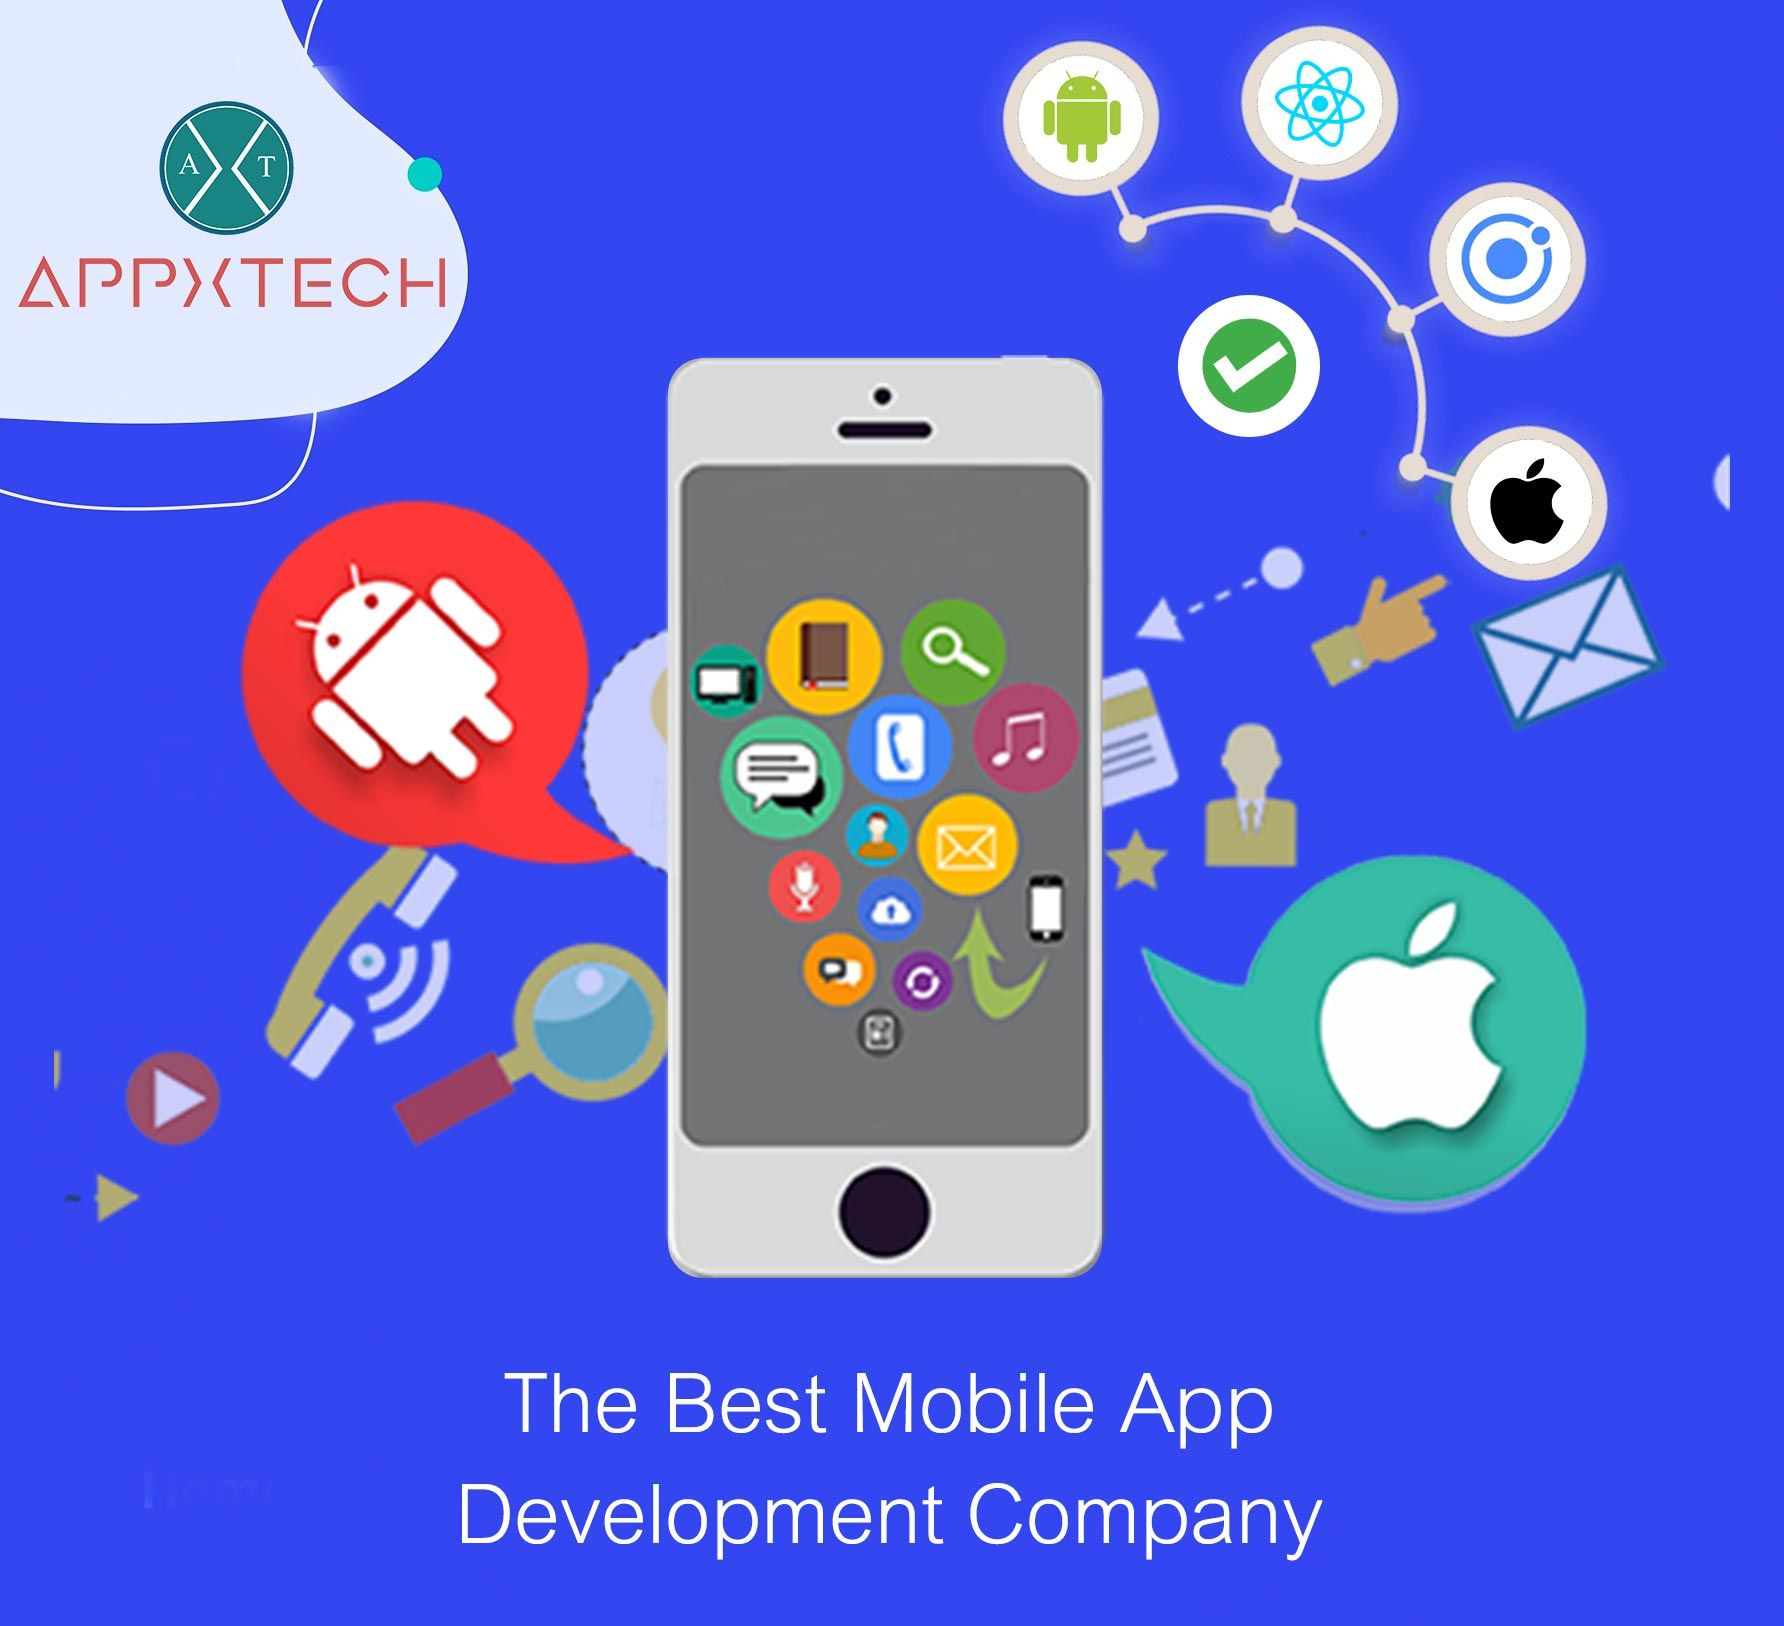 Top notch mobile app development services in the United